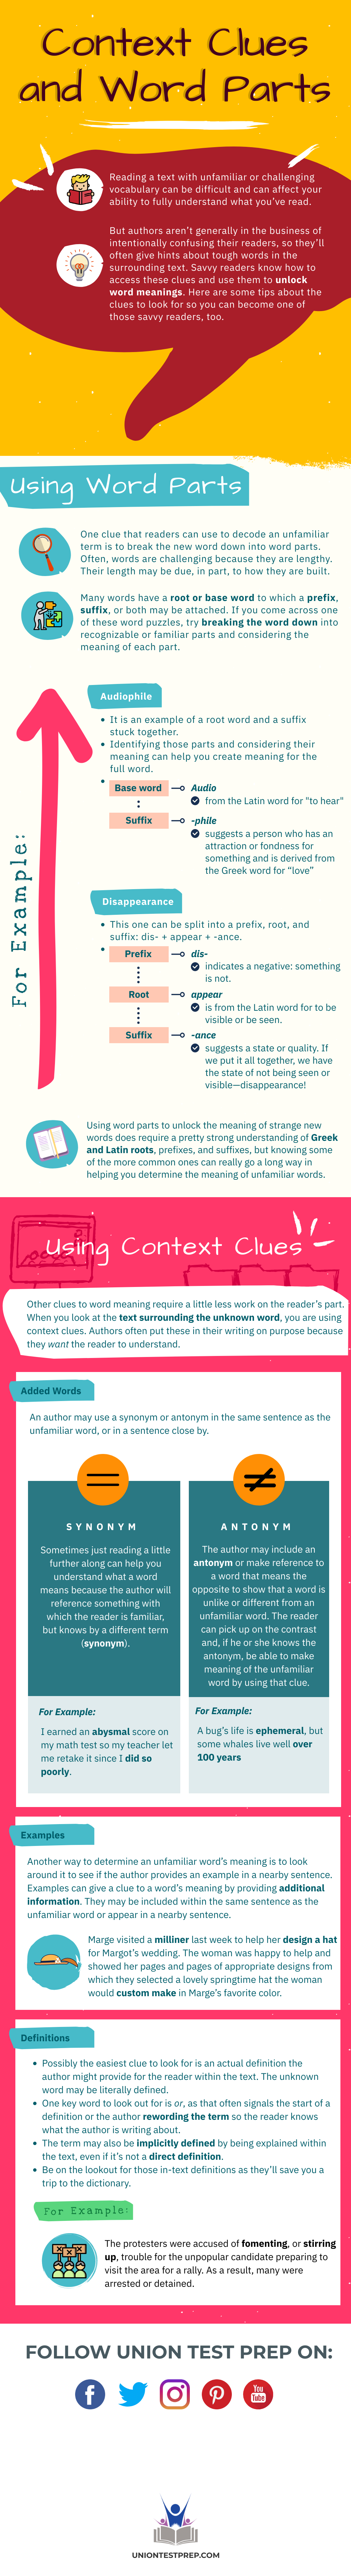 Unlocking Unfamiliar Words When Reading: Context Clues and Word Parts